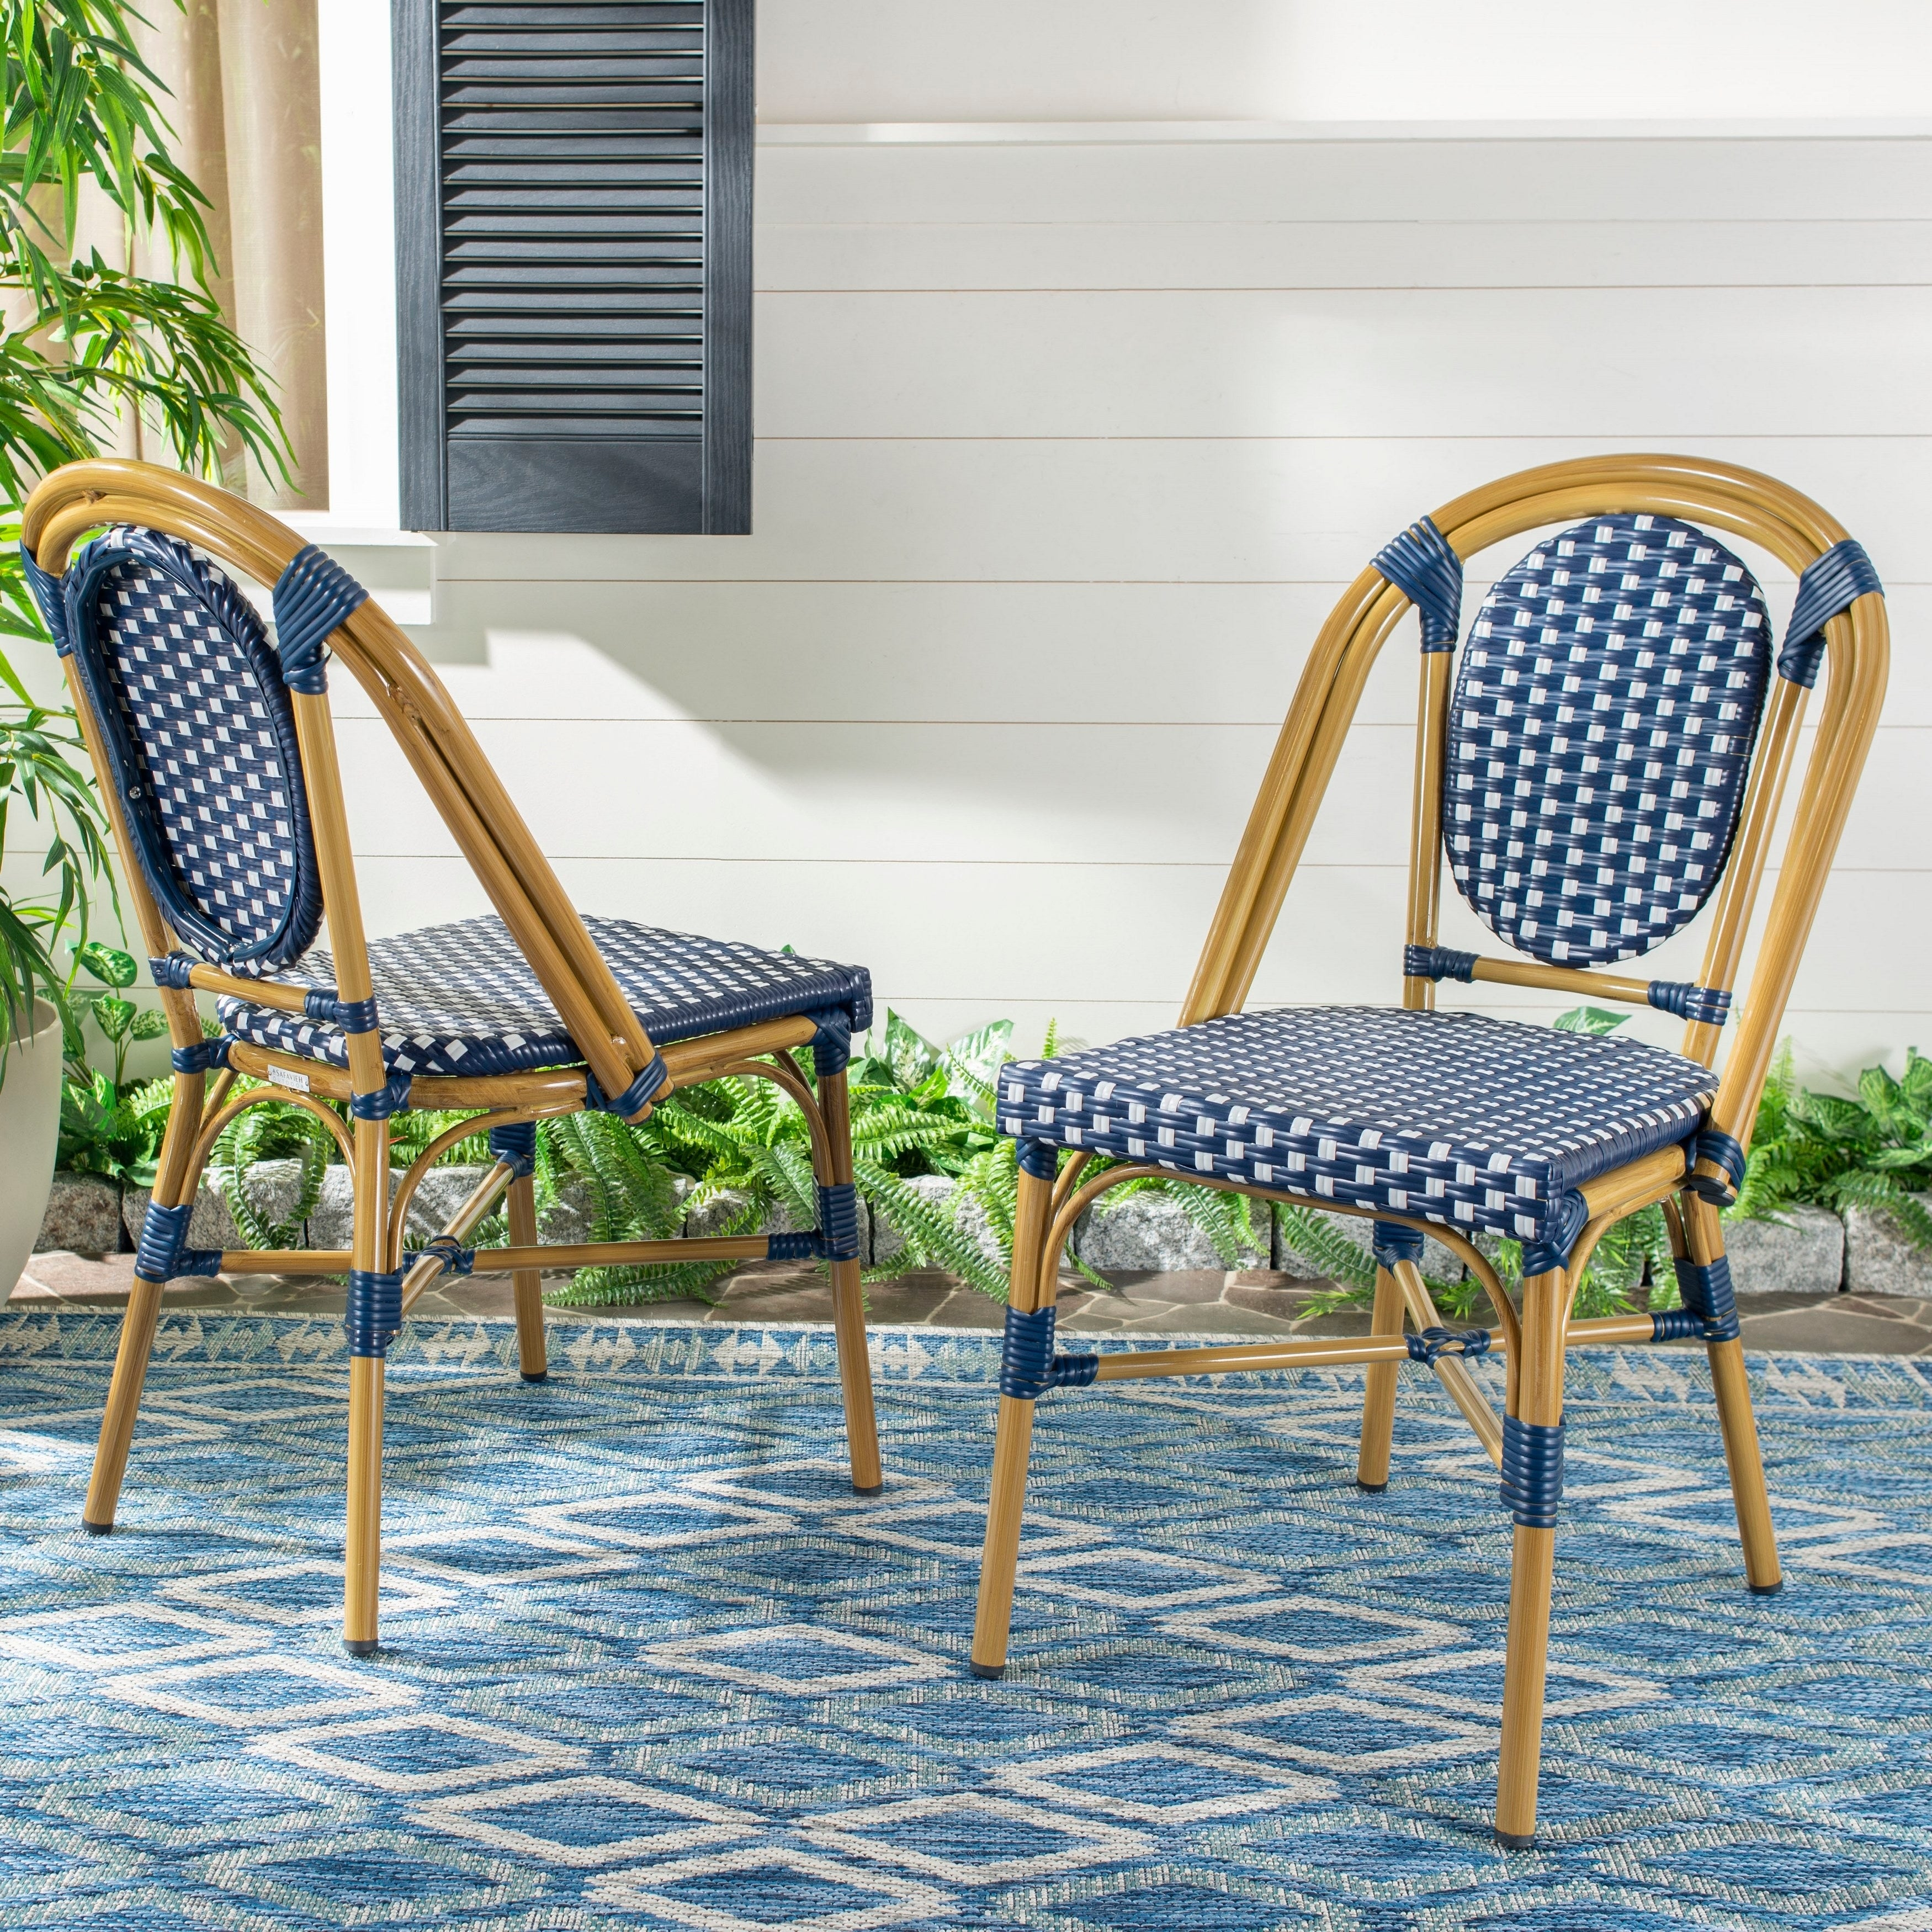 Super Safavieh Outdoor Living Lenda French Bistro Chair Navy White Set Of 2 Gmtry Best Dining Table And Chair Ideas Images Gmtryco